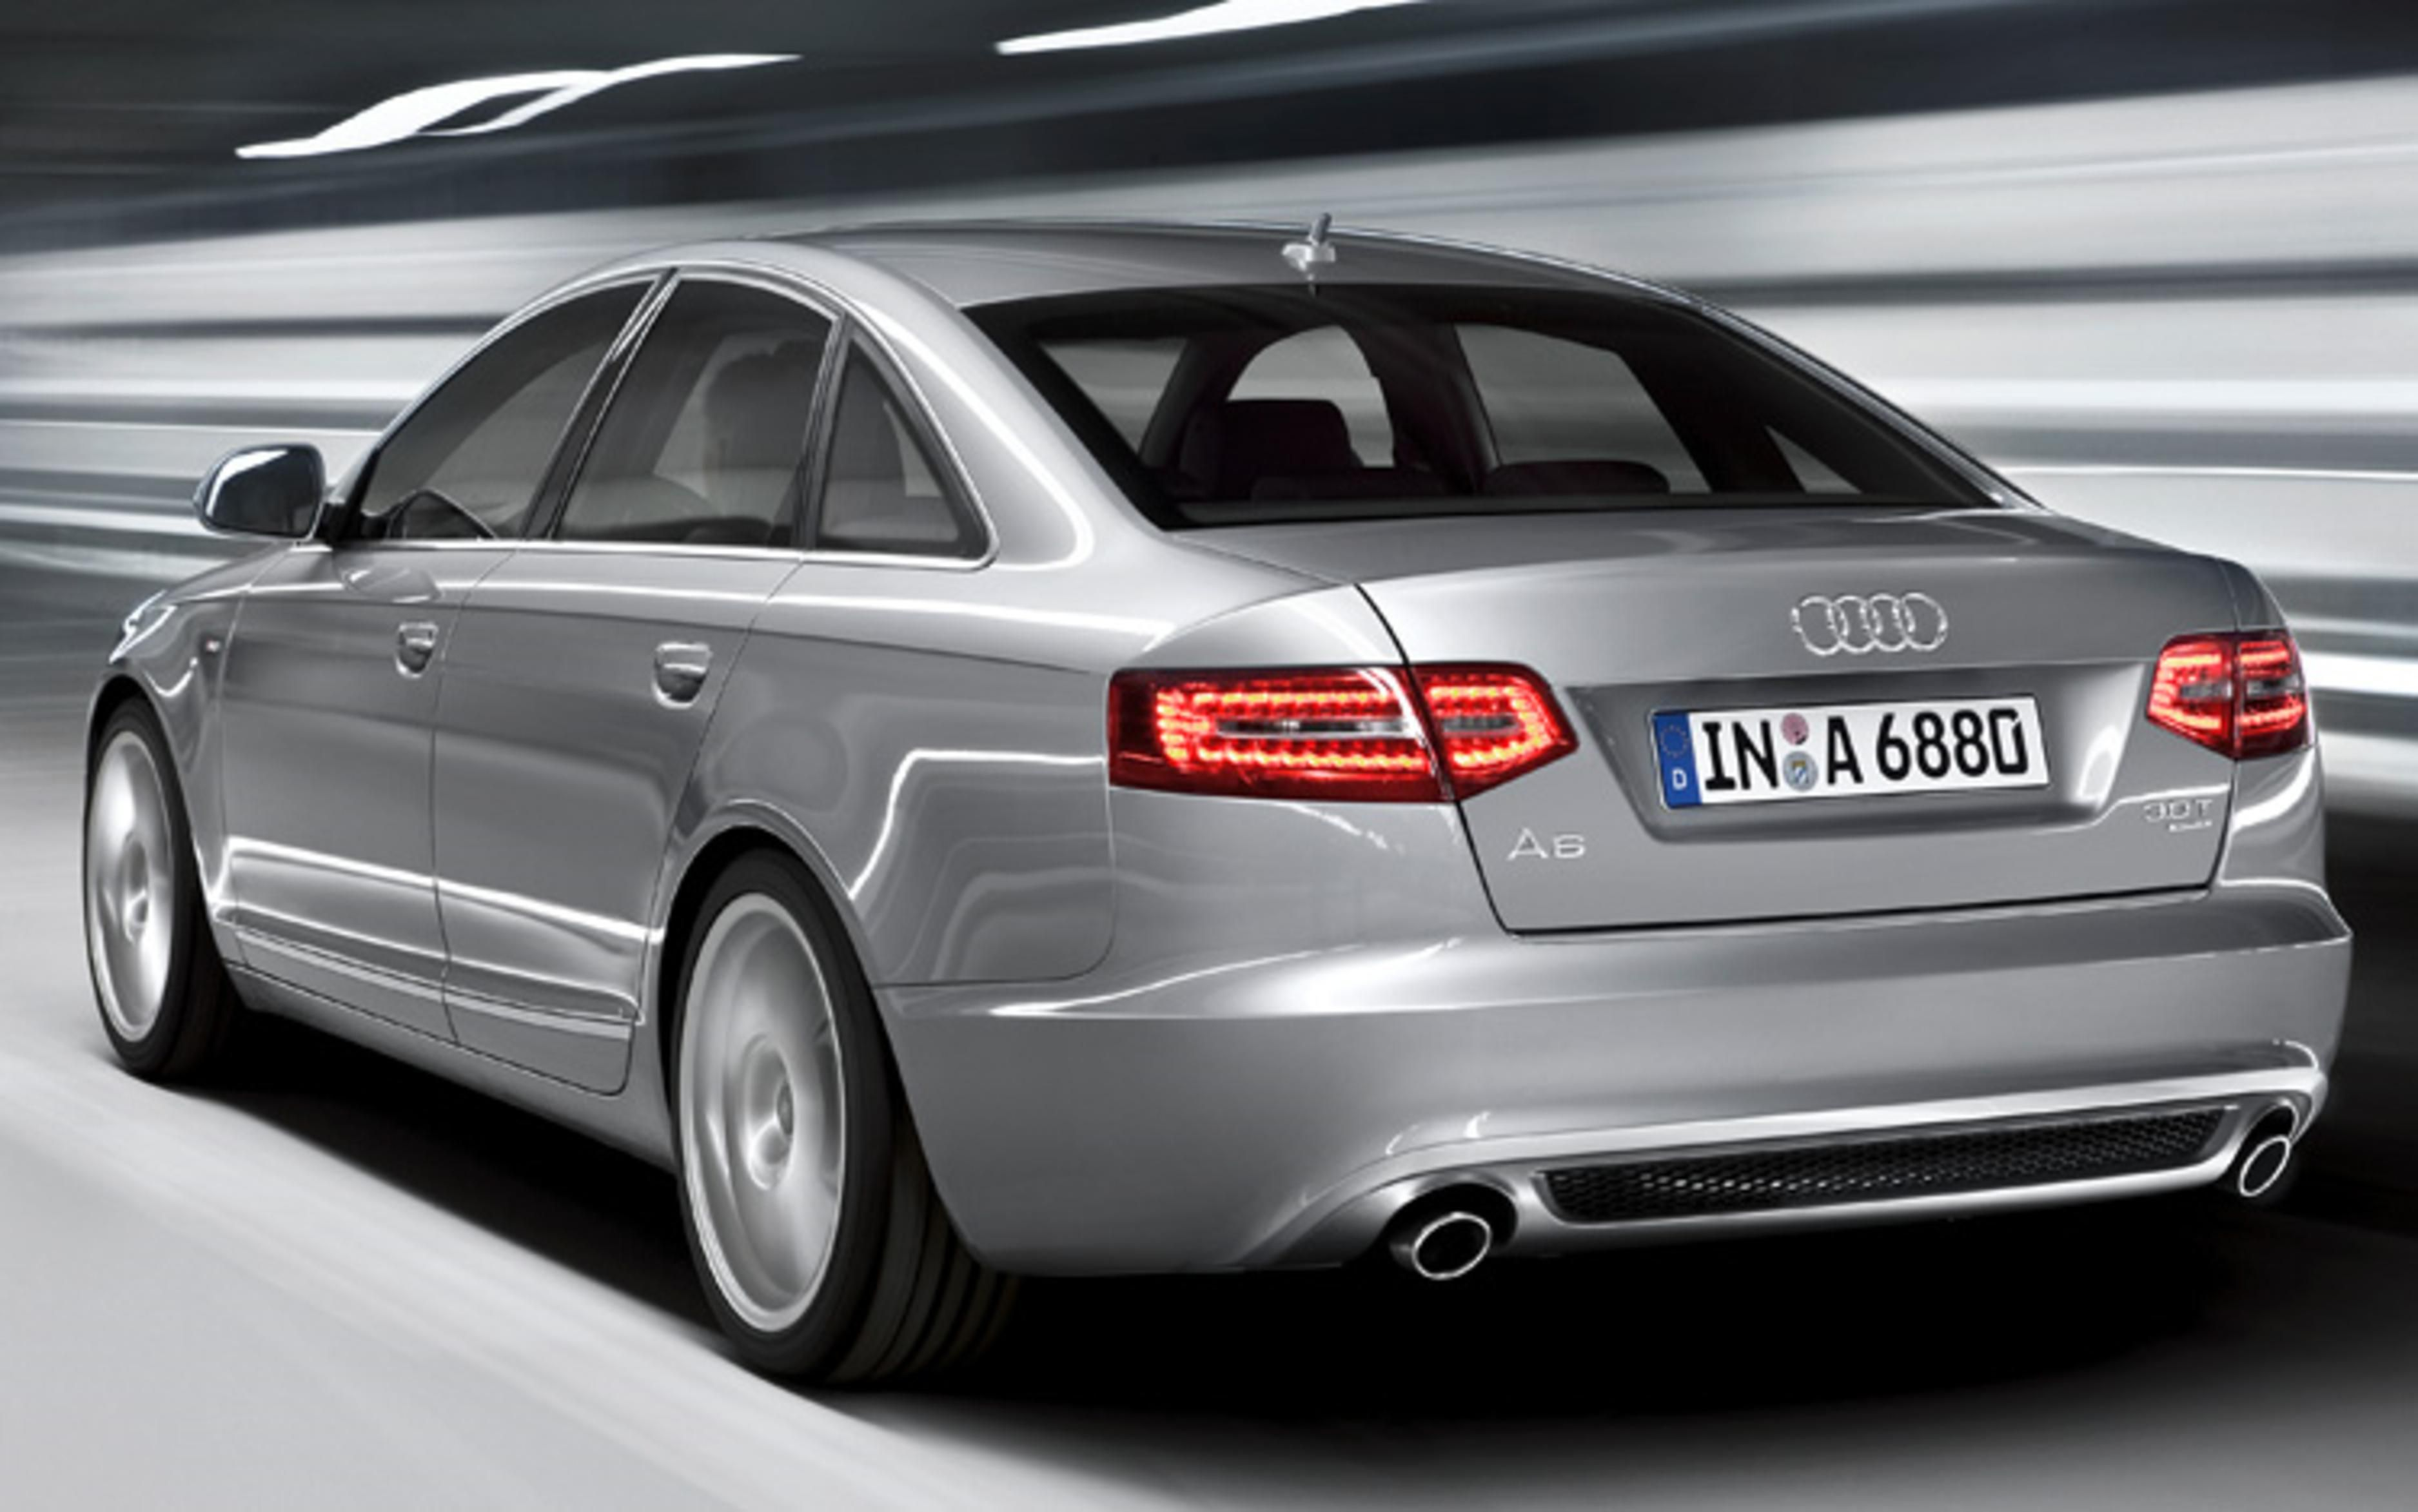 Audi A6 33L information e check out AMSOIL synthetic motor oil